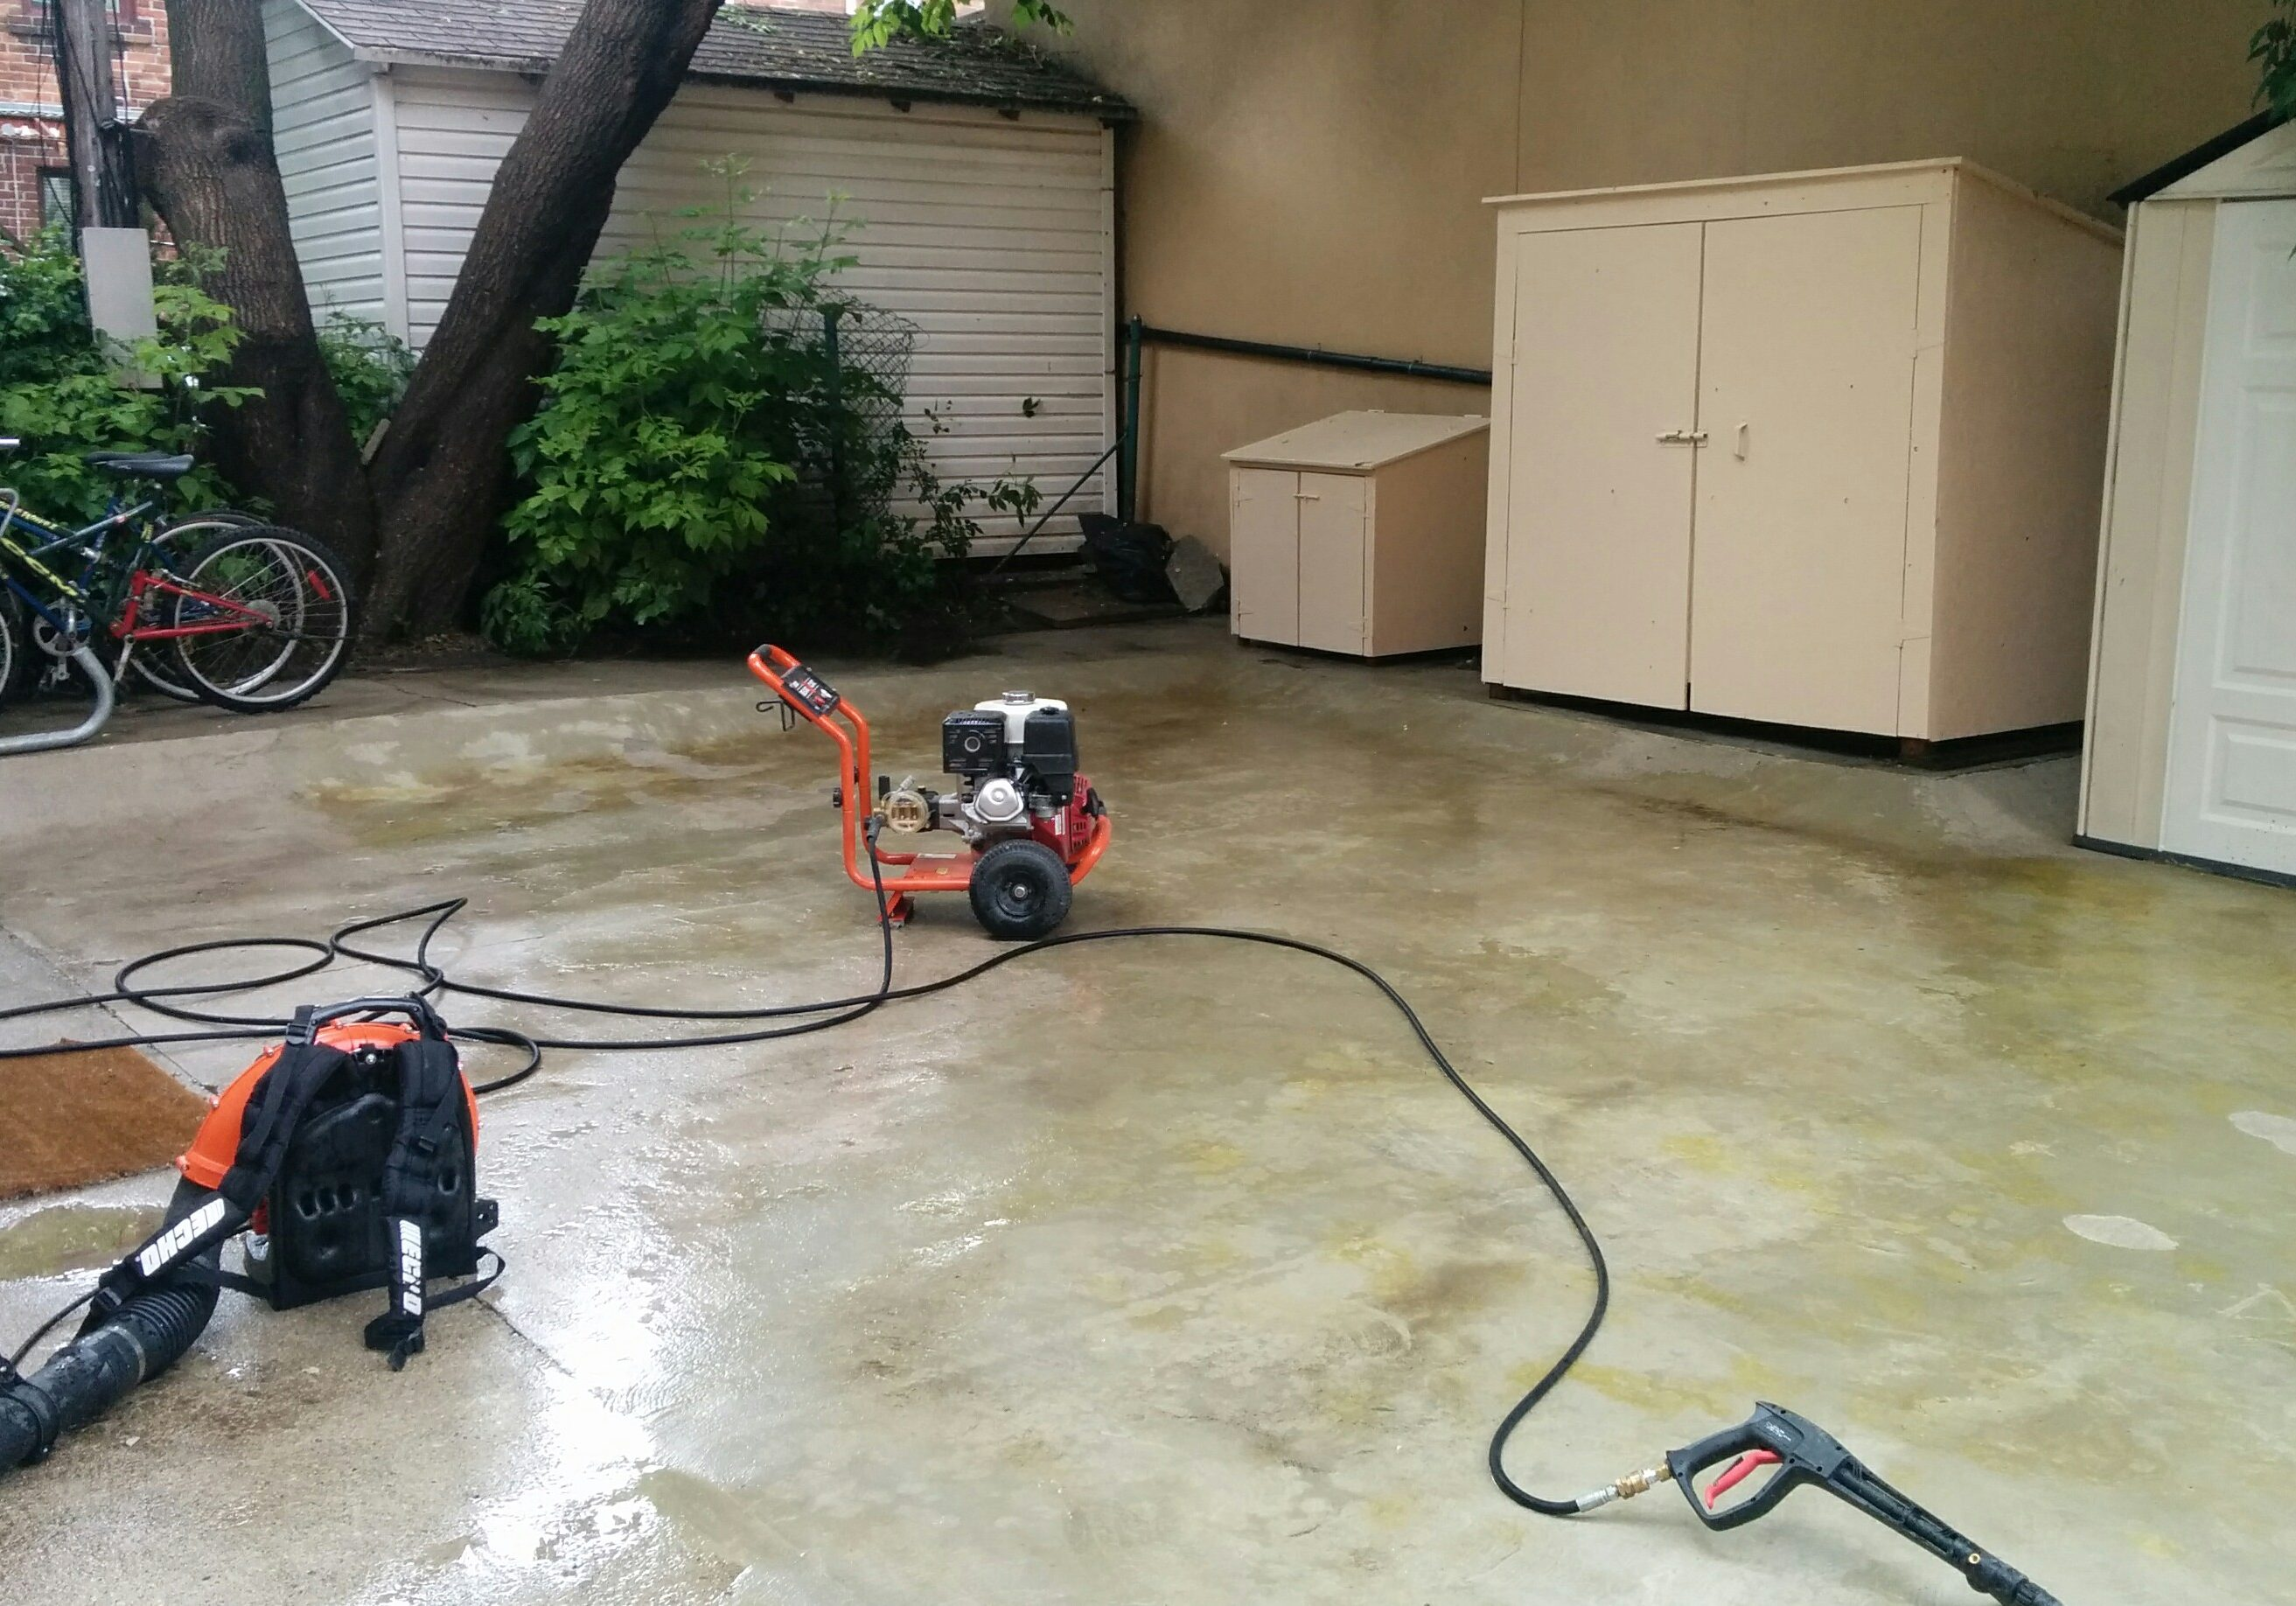 Photo of pressure washer being used for cleaning concrete by Gardenzilla in Midtown Toronto